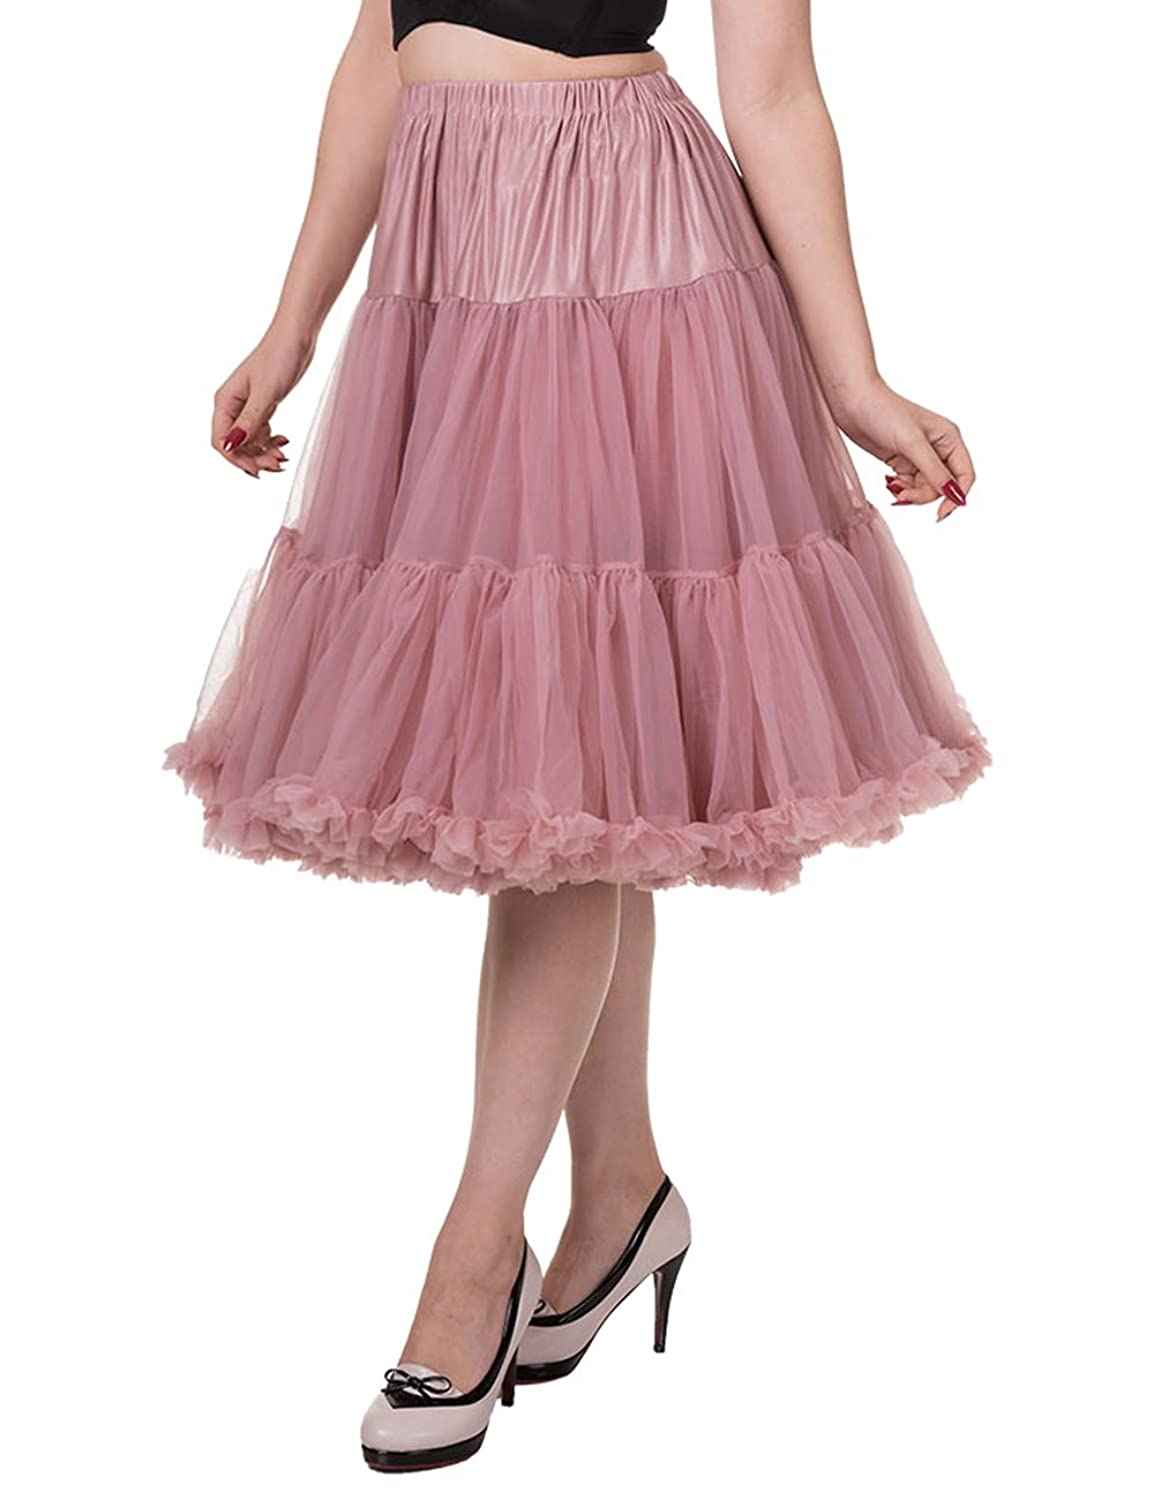 Banned Women's Petticoat Skirt